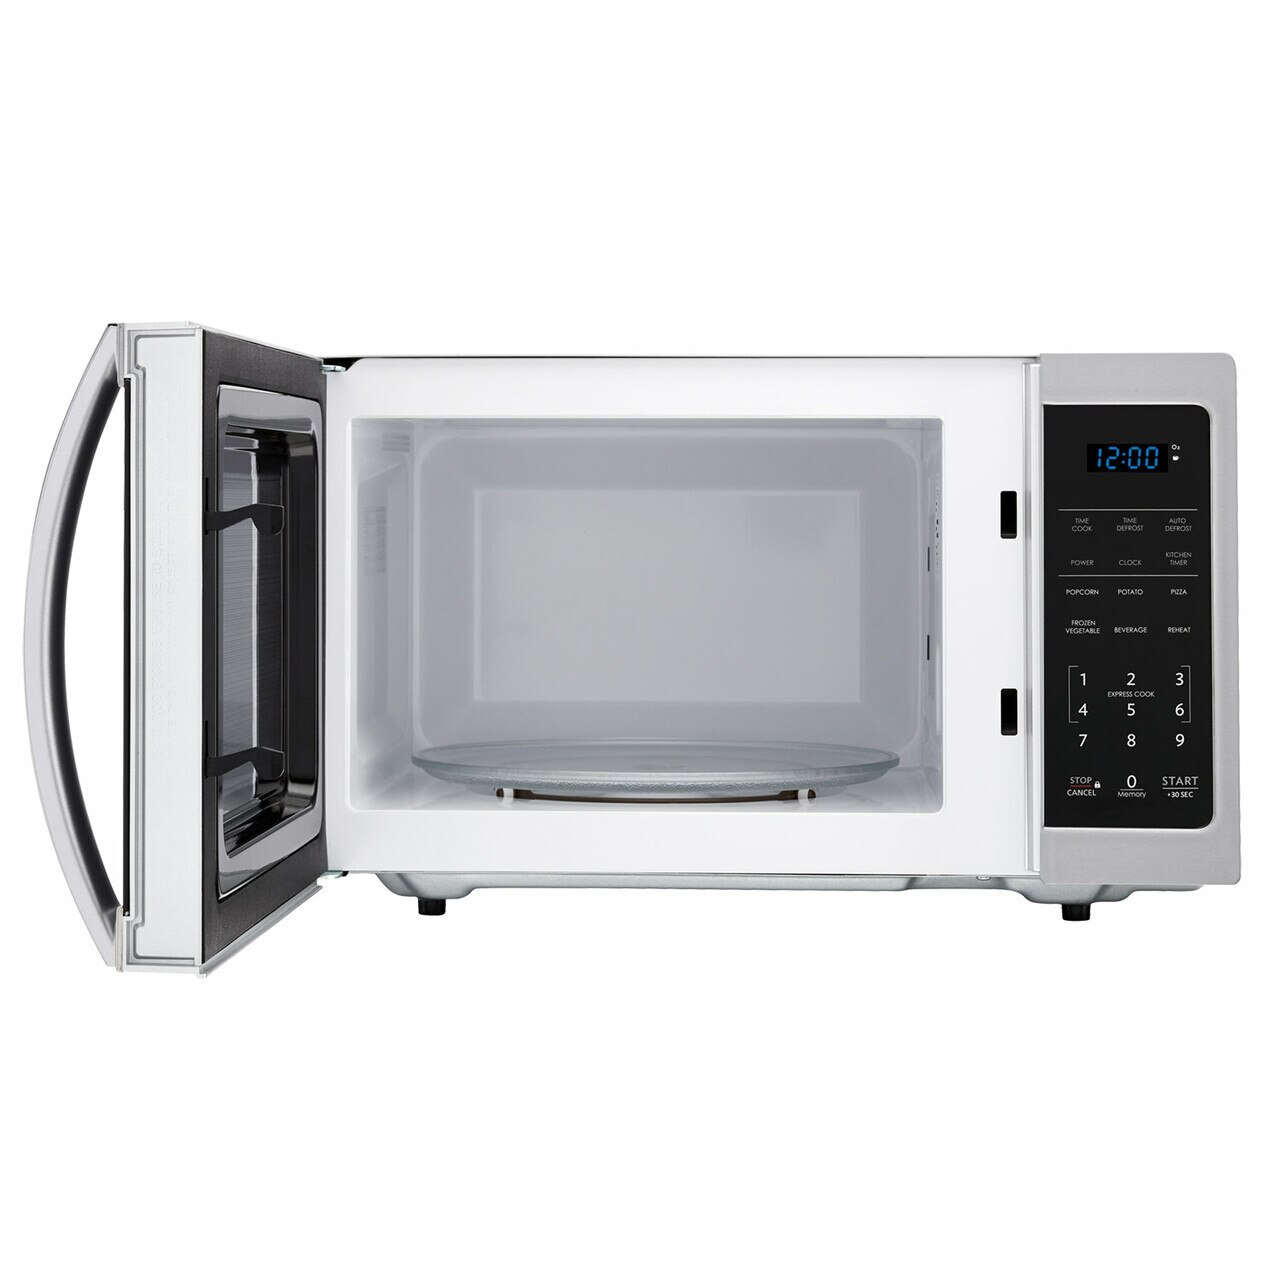 0.9 cu. ft. 900W Sharp Stainless Steel Carousel Countertop Microwave (SMC0912BS) – front view with door open